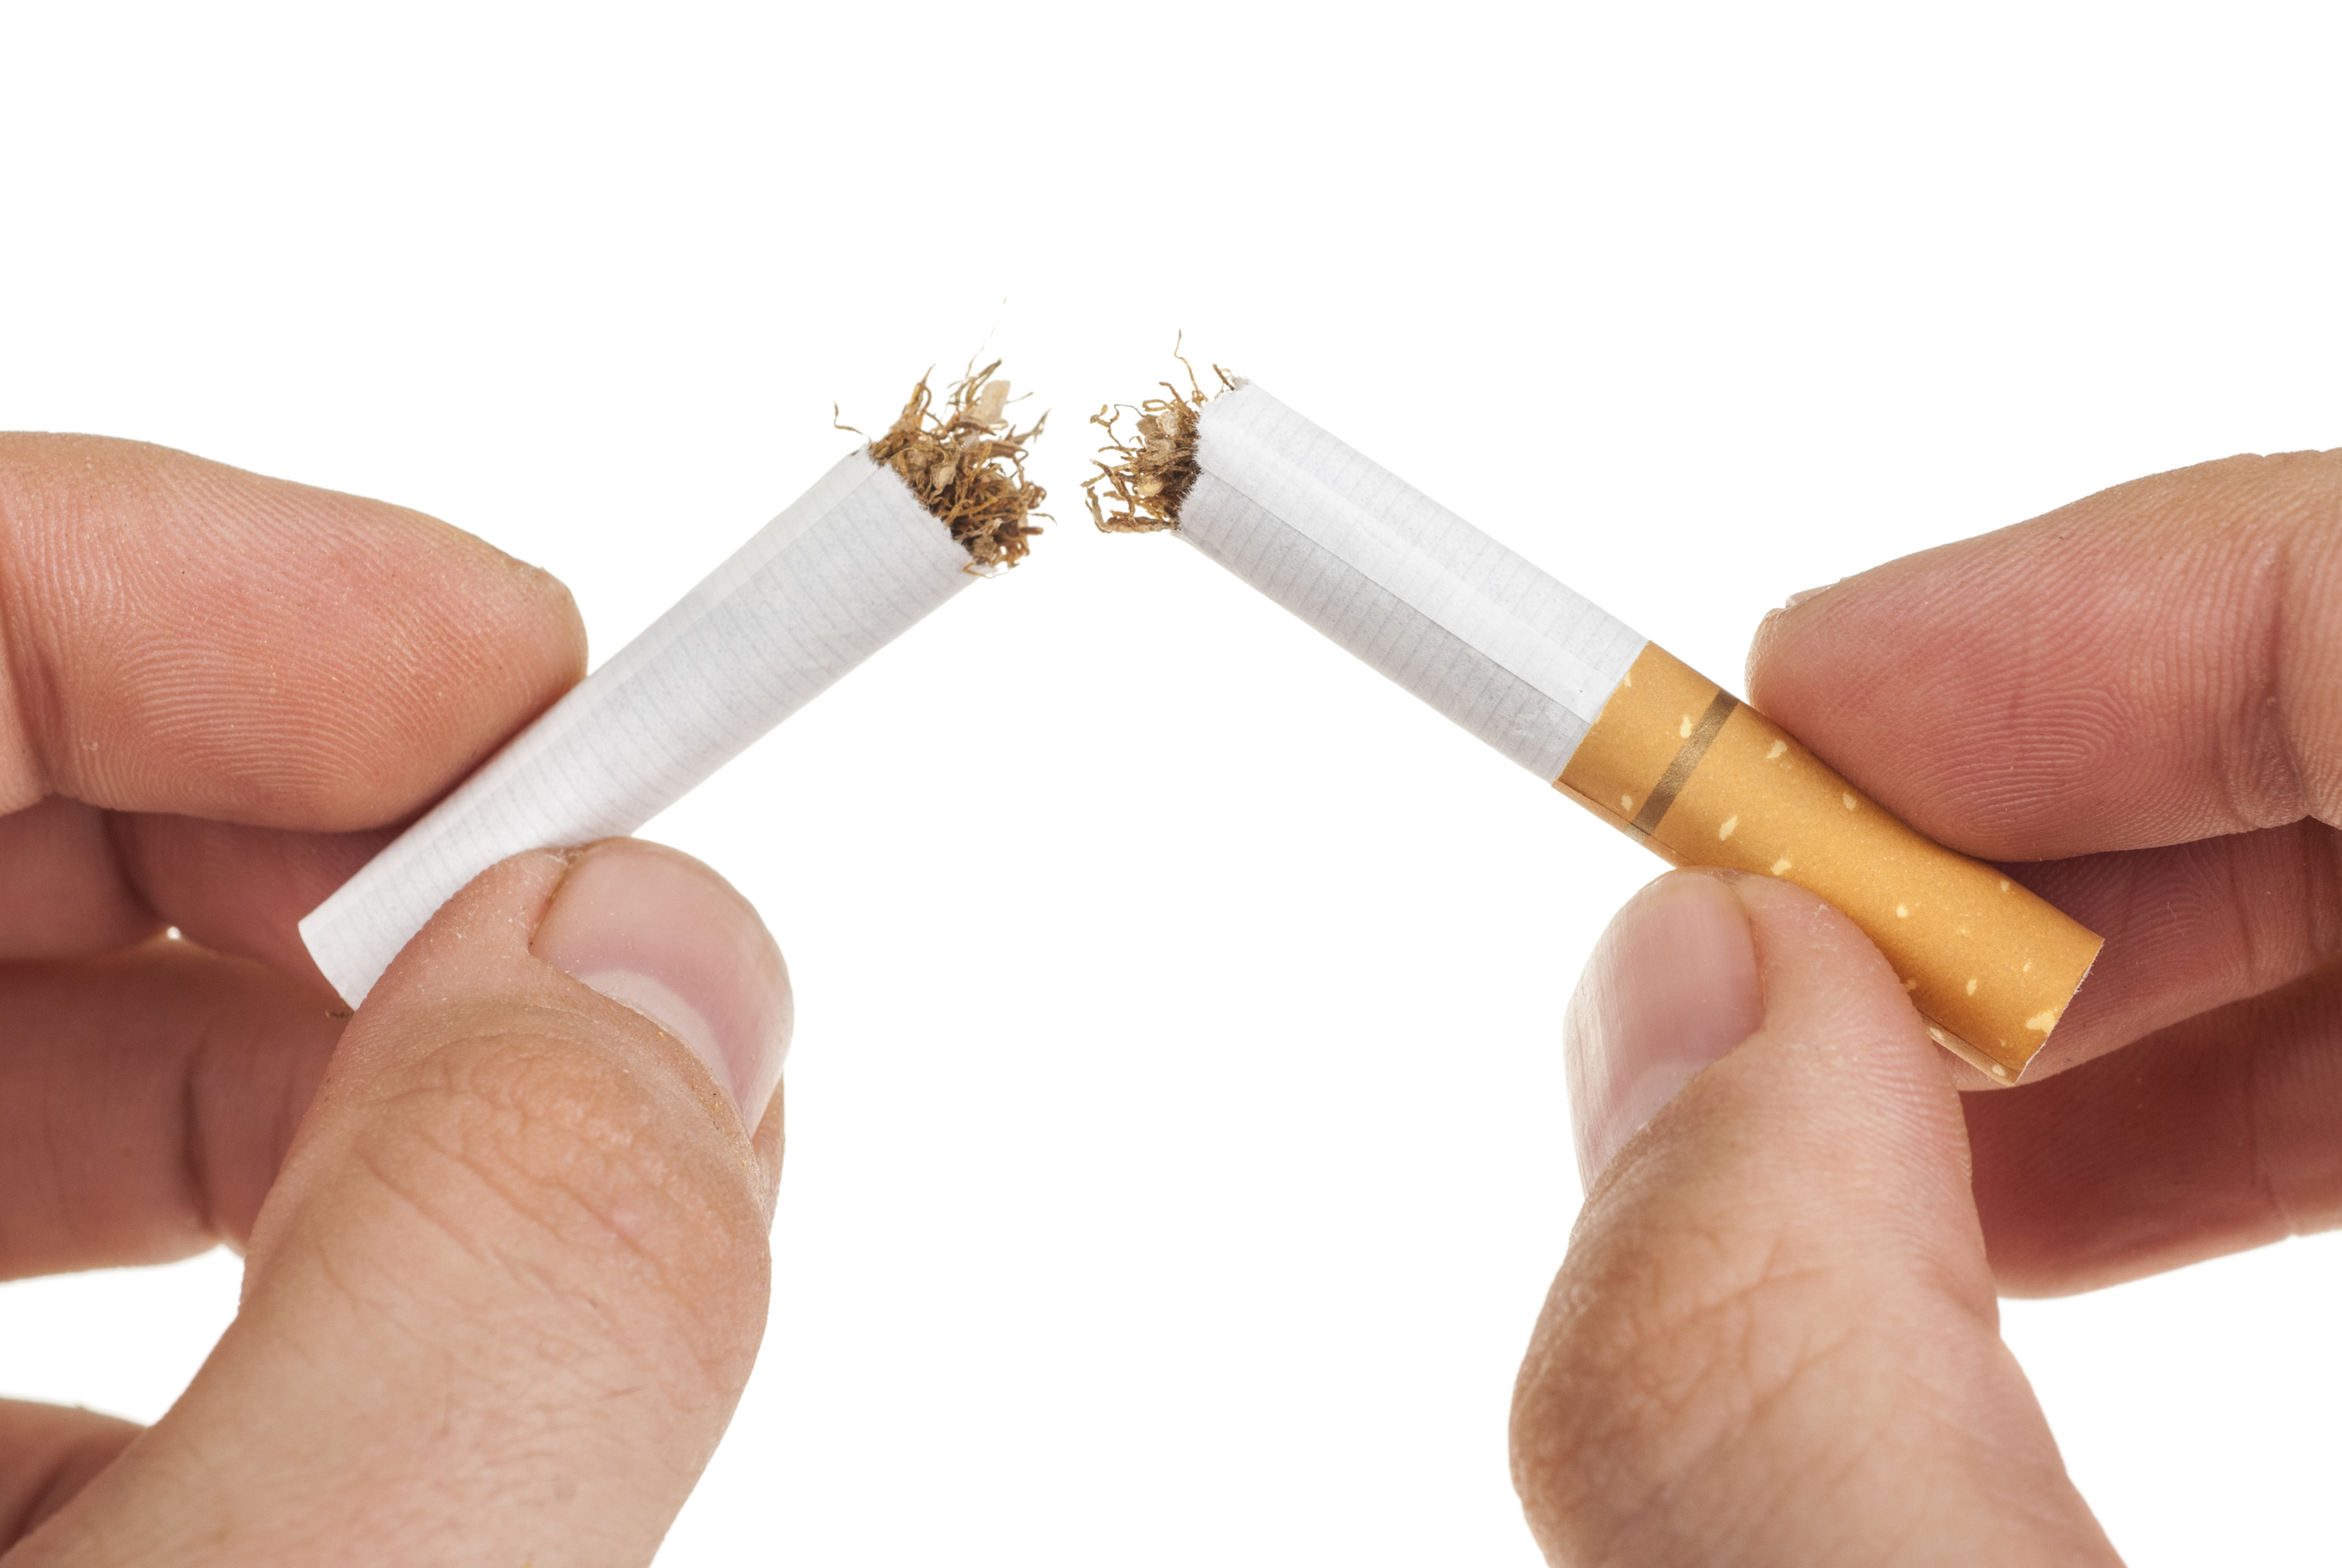 The medical treatment of tobacco addiction – From negligence to excellence